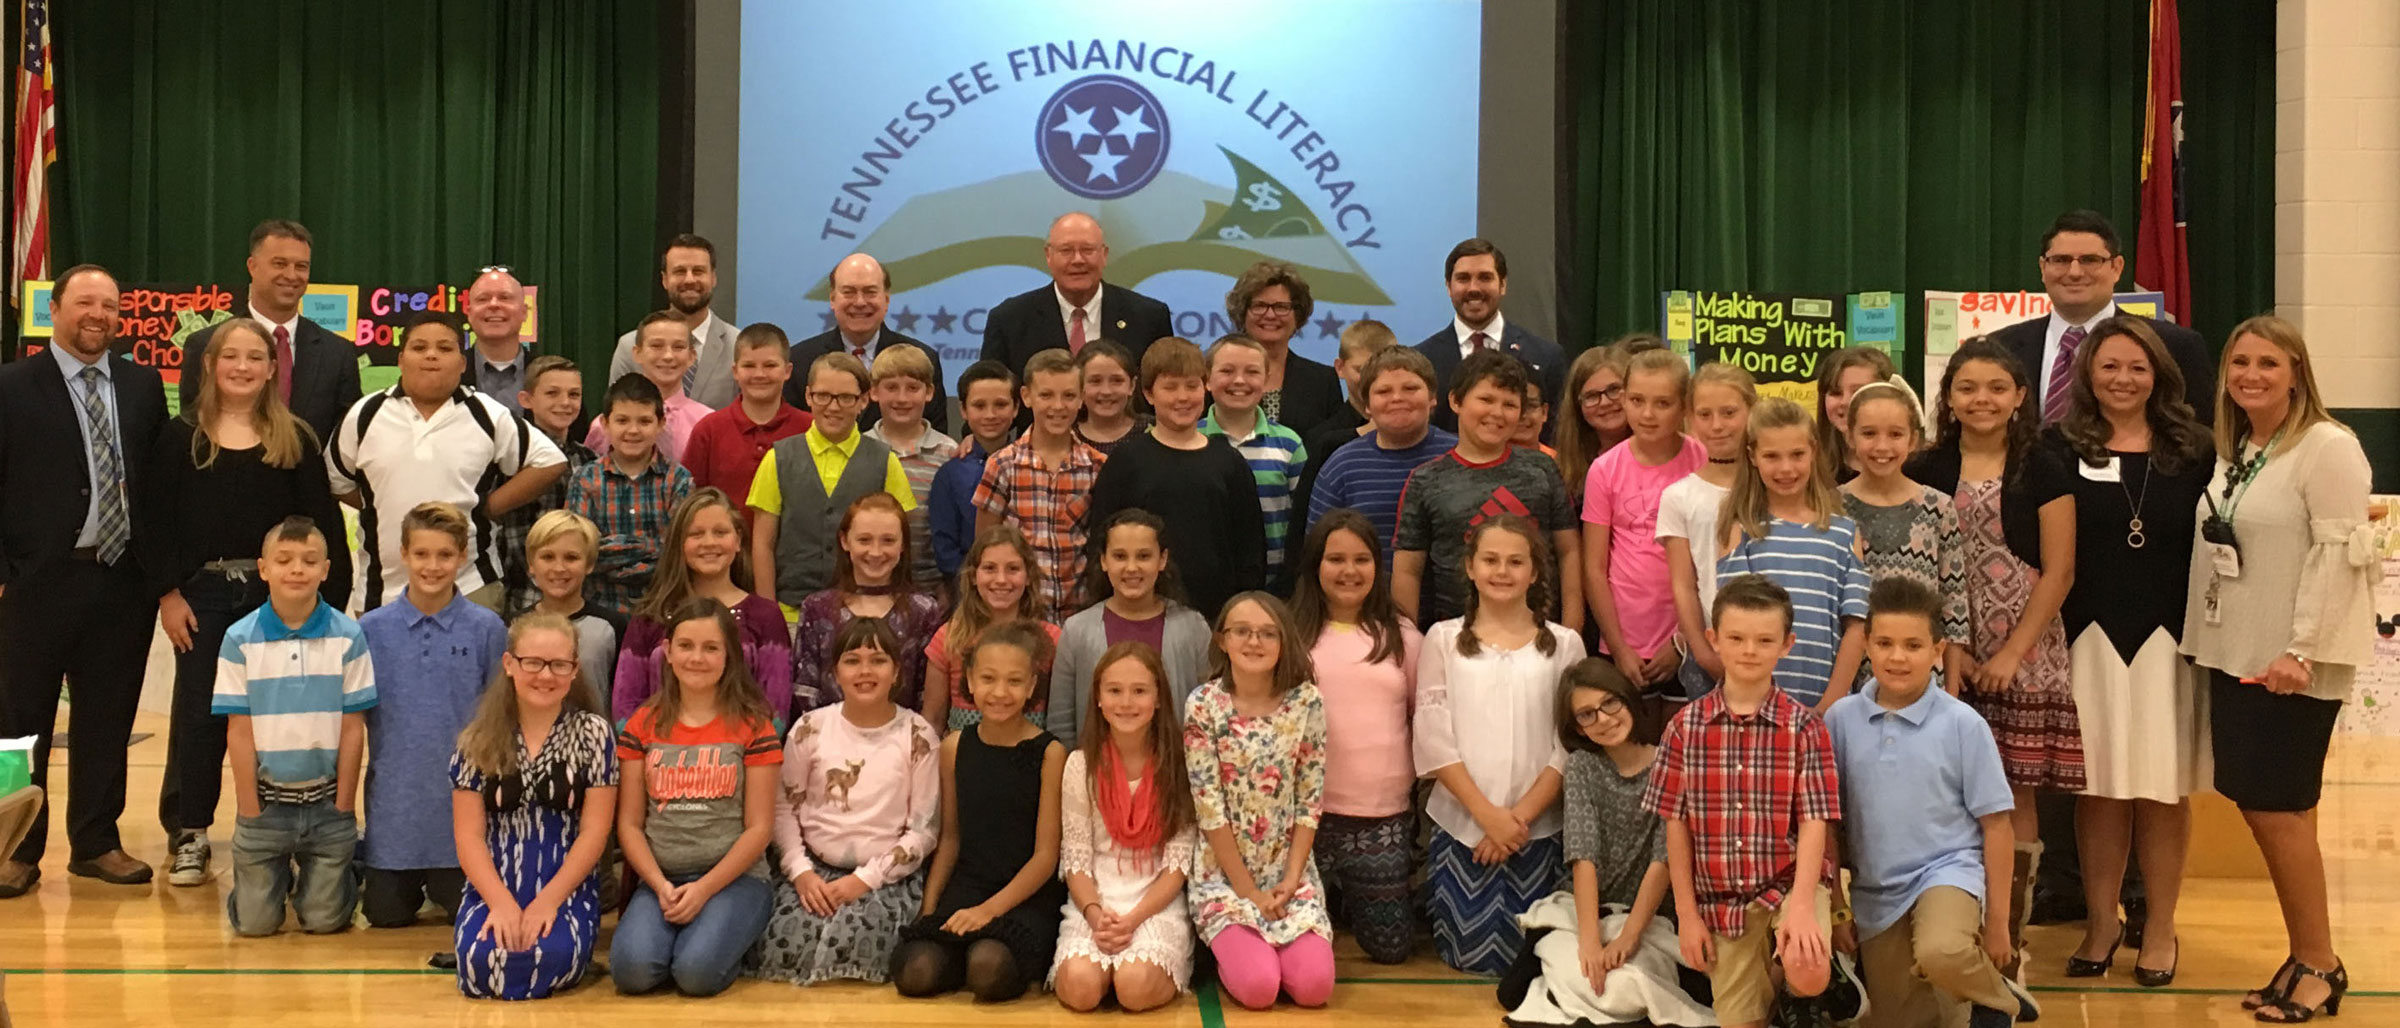 Treasurer Lillard with students and staff of Elizabethtown Elementary in Tennessee during financial education event